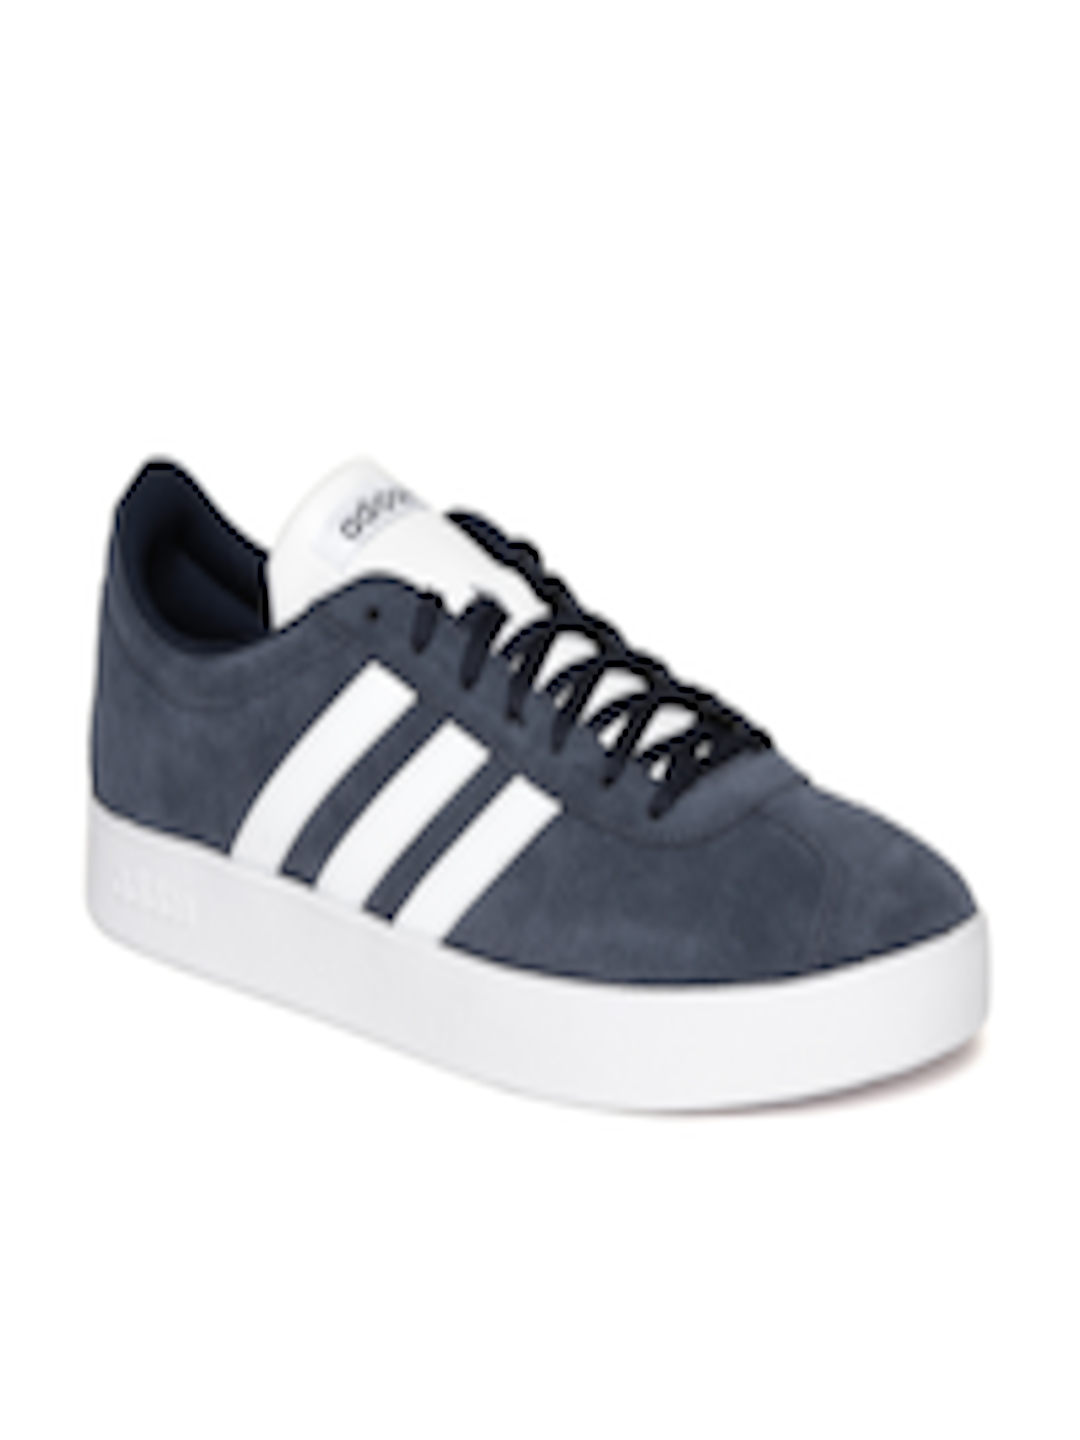 4fc5d455465 Buy ADIDAS Men Navy Blue VL COURT 2.0 Sneakers - Casual Shoes for Men  2444404